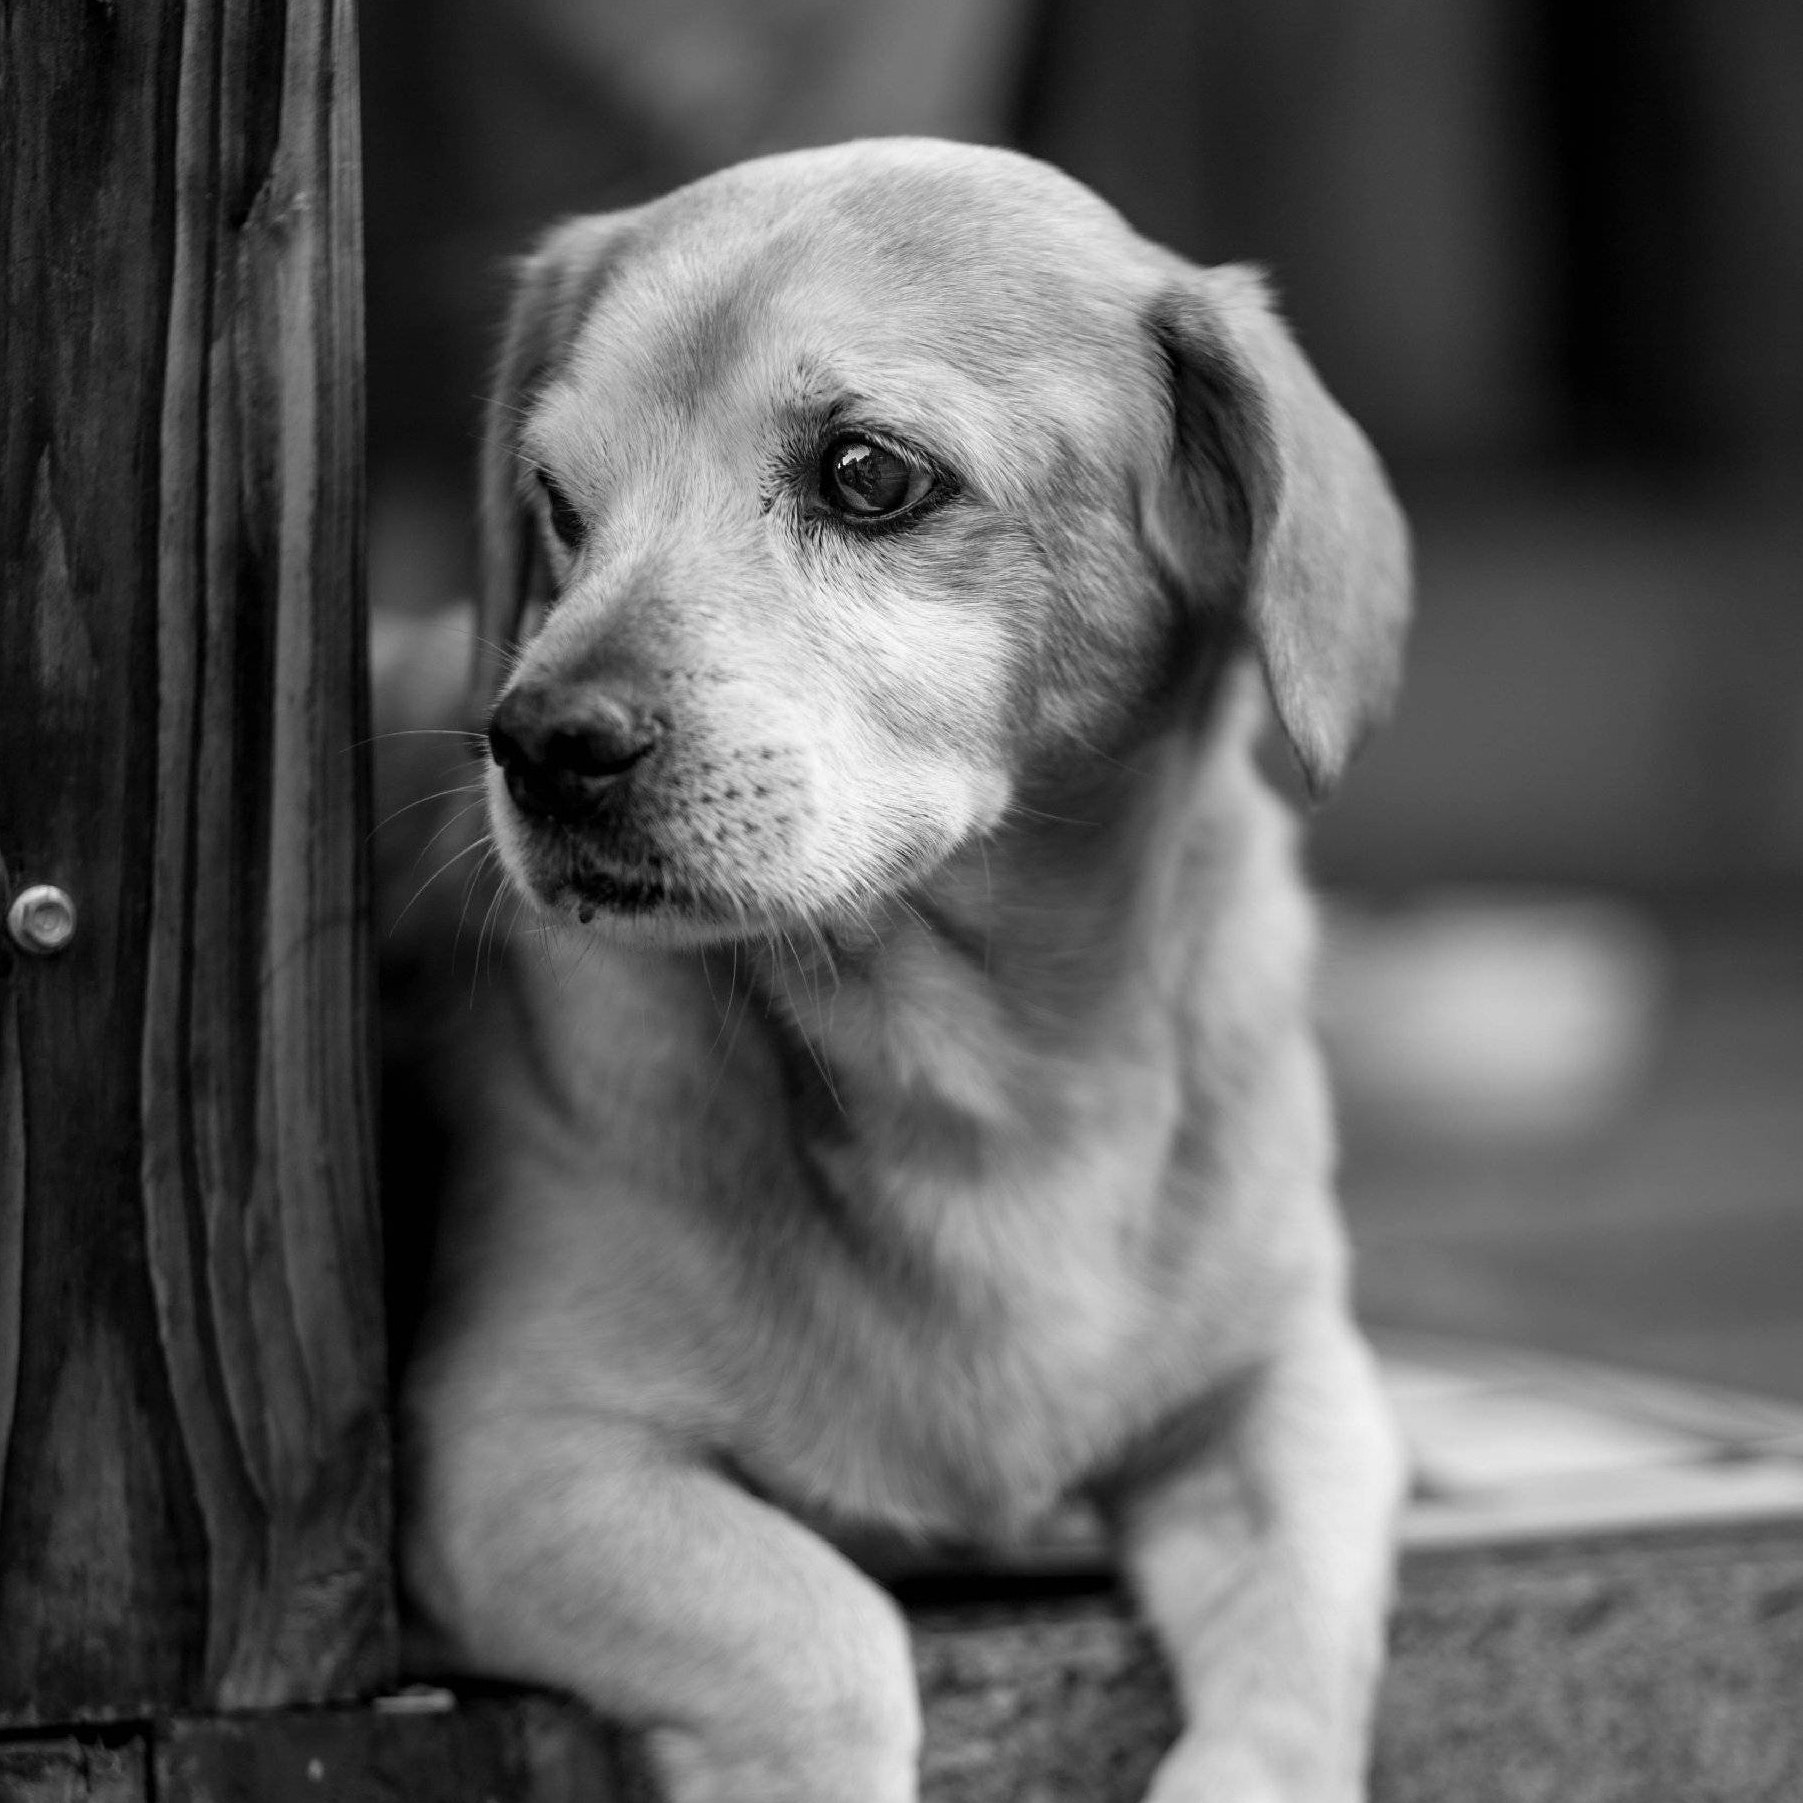 Short Coated Puppy Grayscale Photo · Free Stock Photo